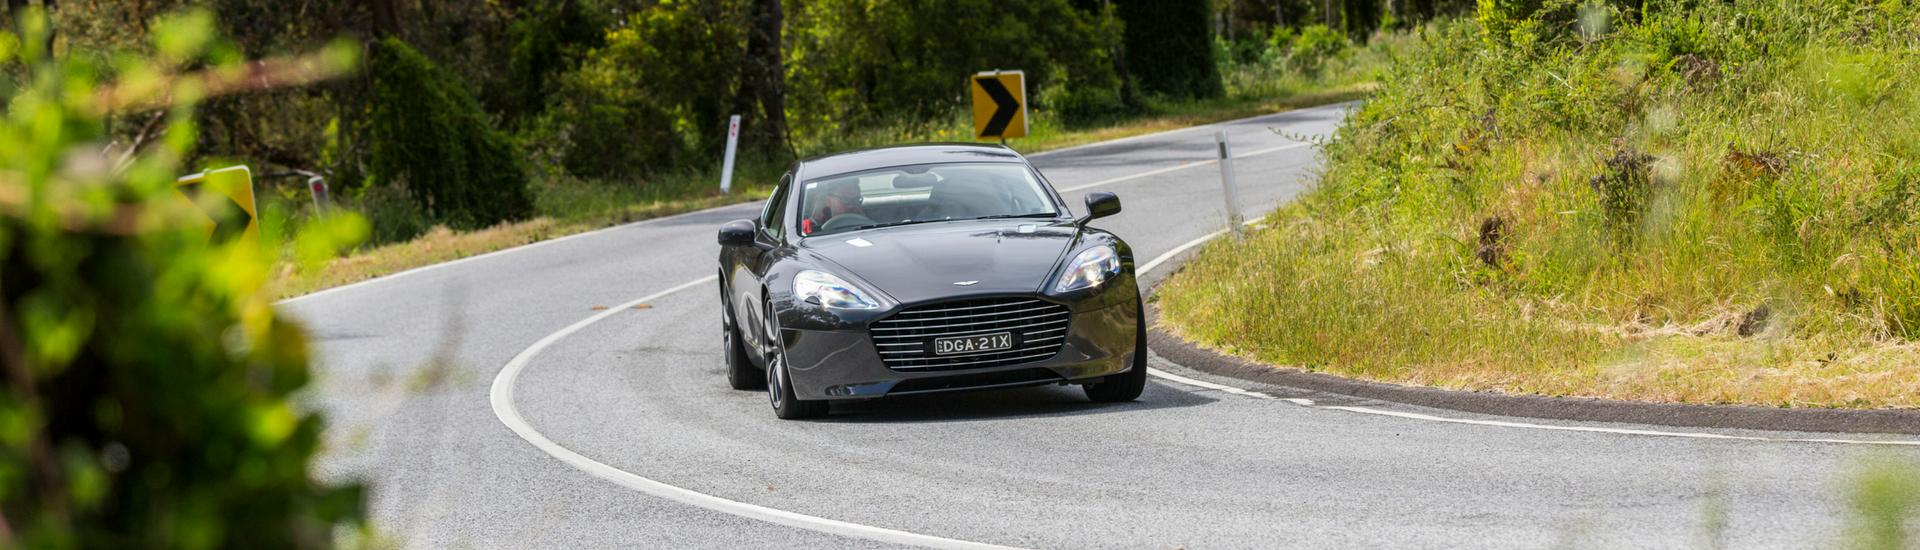 New Aston Martin Rapide Hatch Cars For Sale Carsalescomau - Aston martin rapide for sale